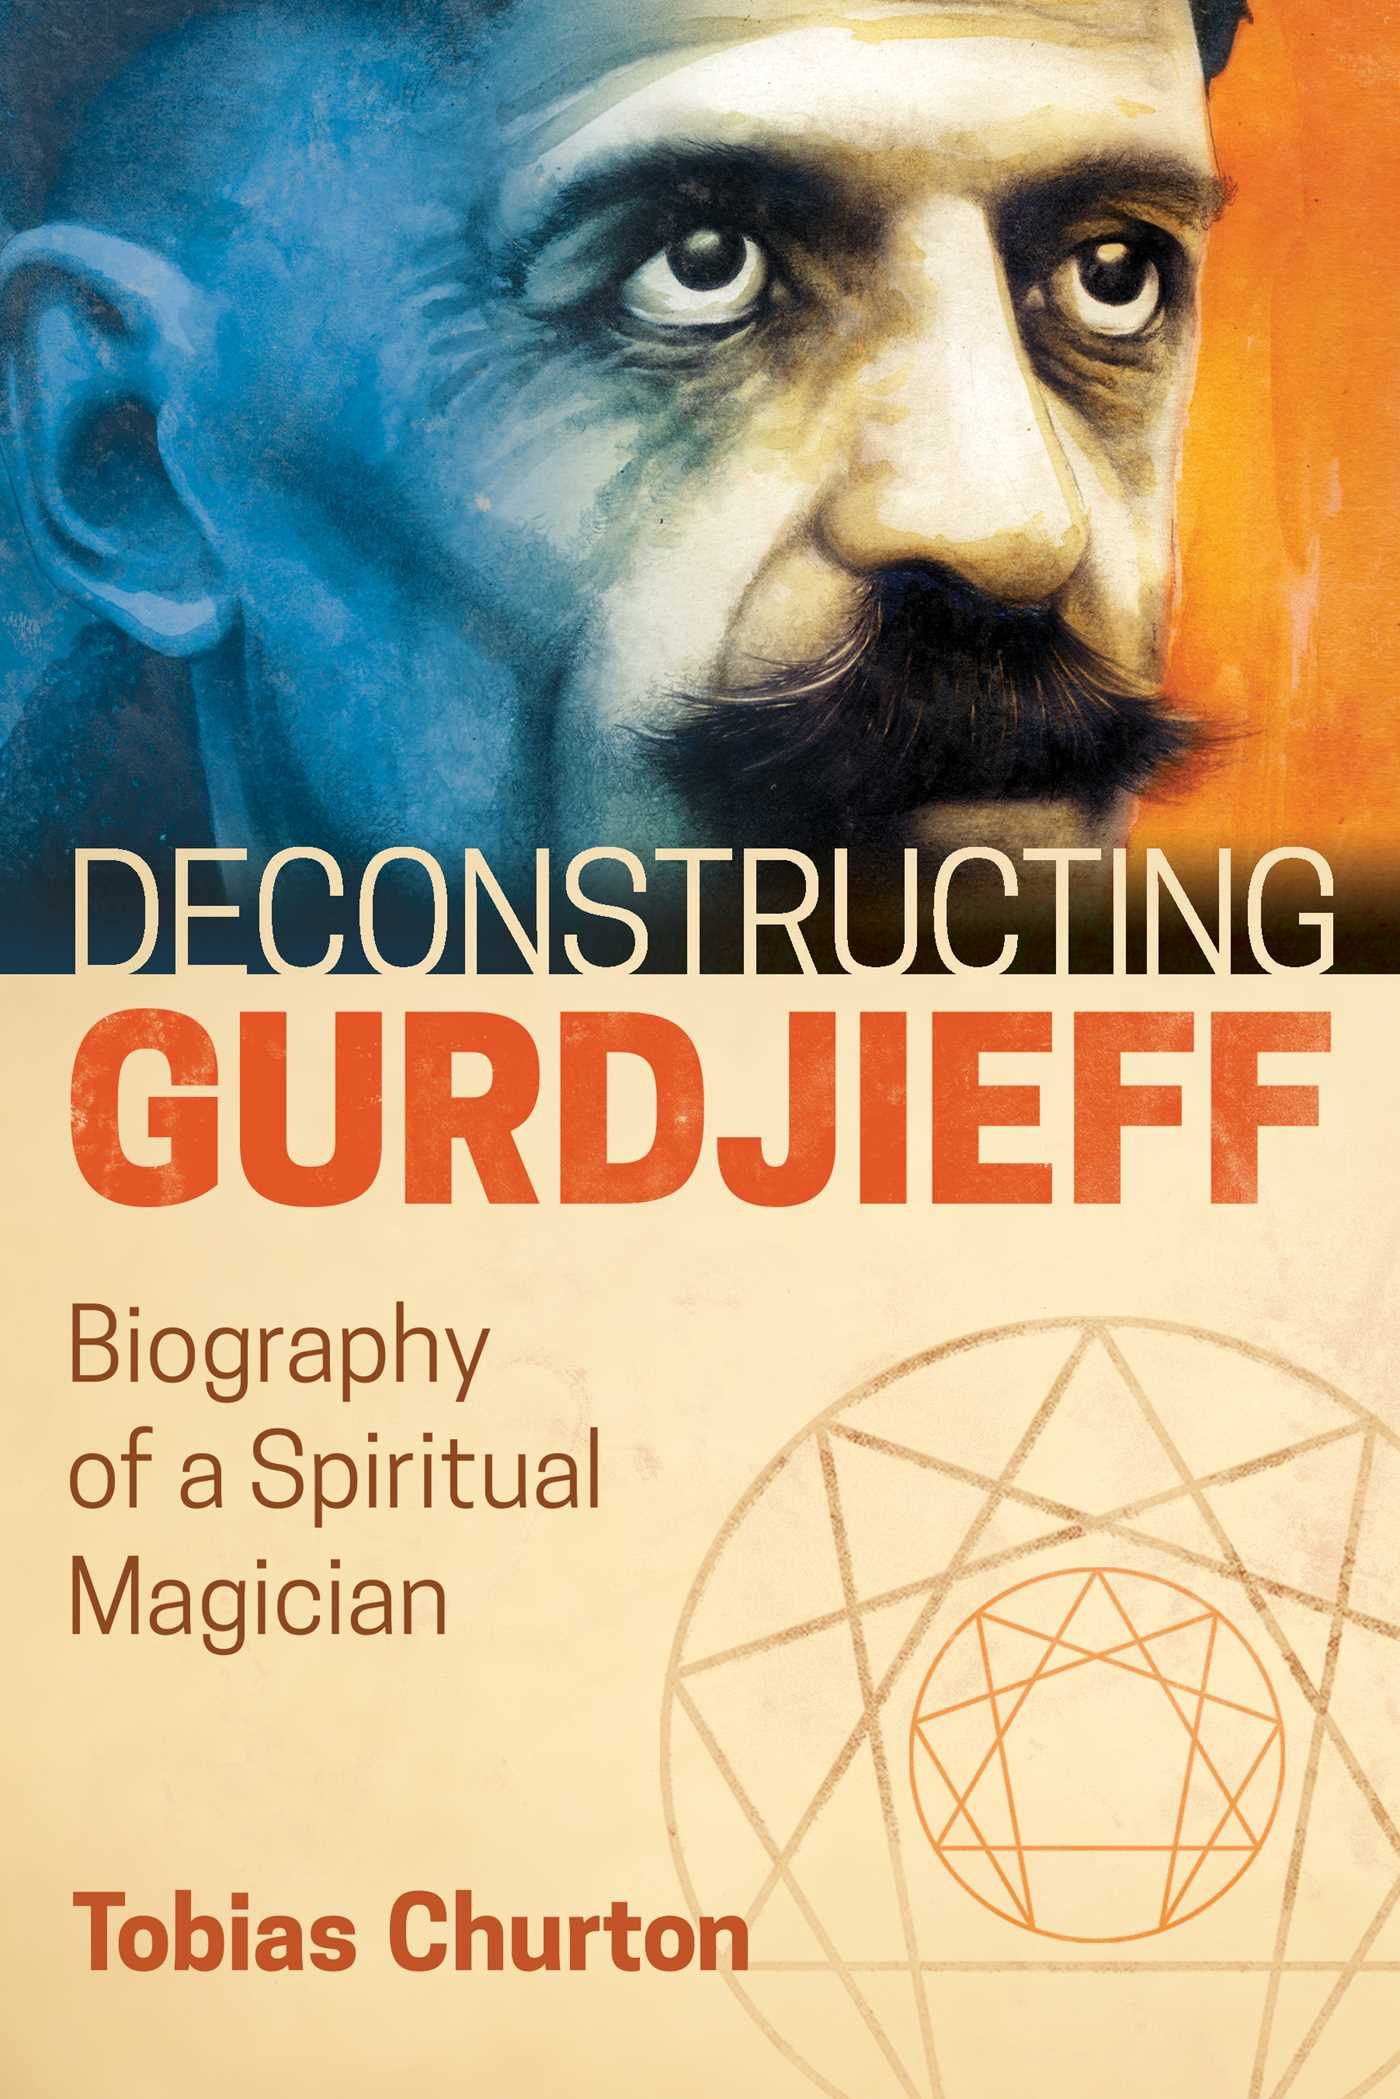 Deconstructing gurdjieff 9781620556382 hr